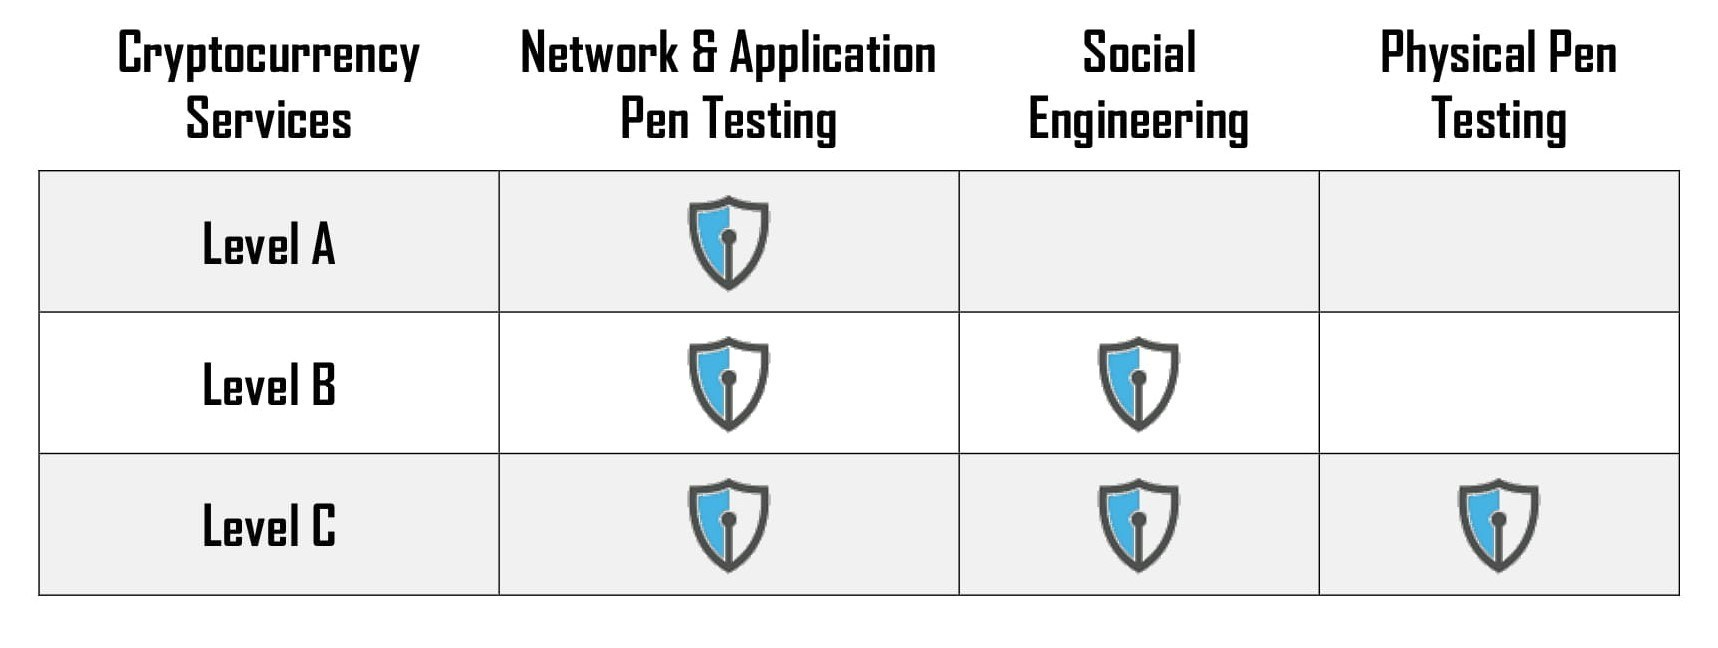 three tiers of penetration testing